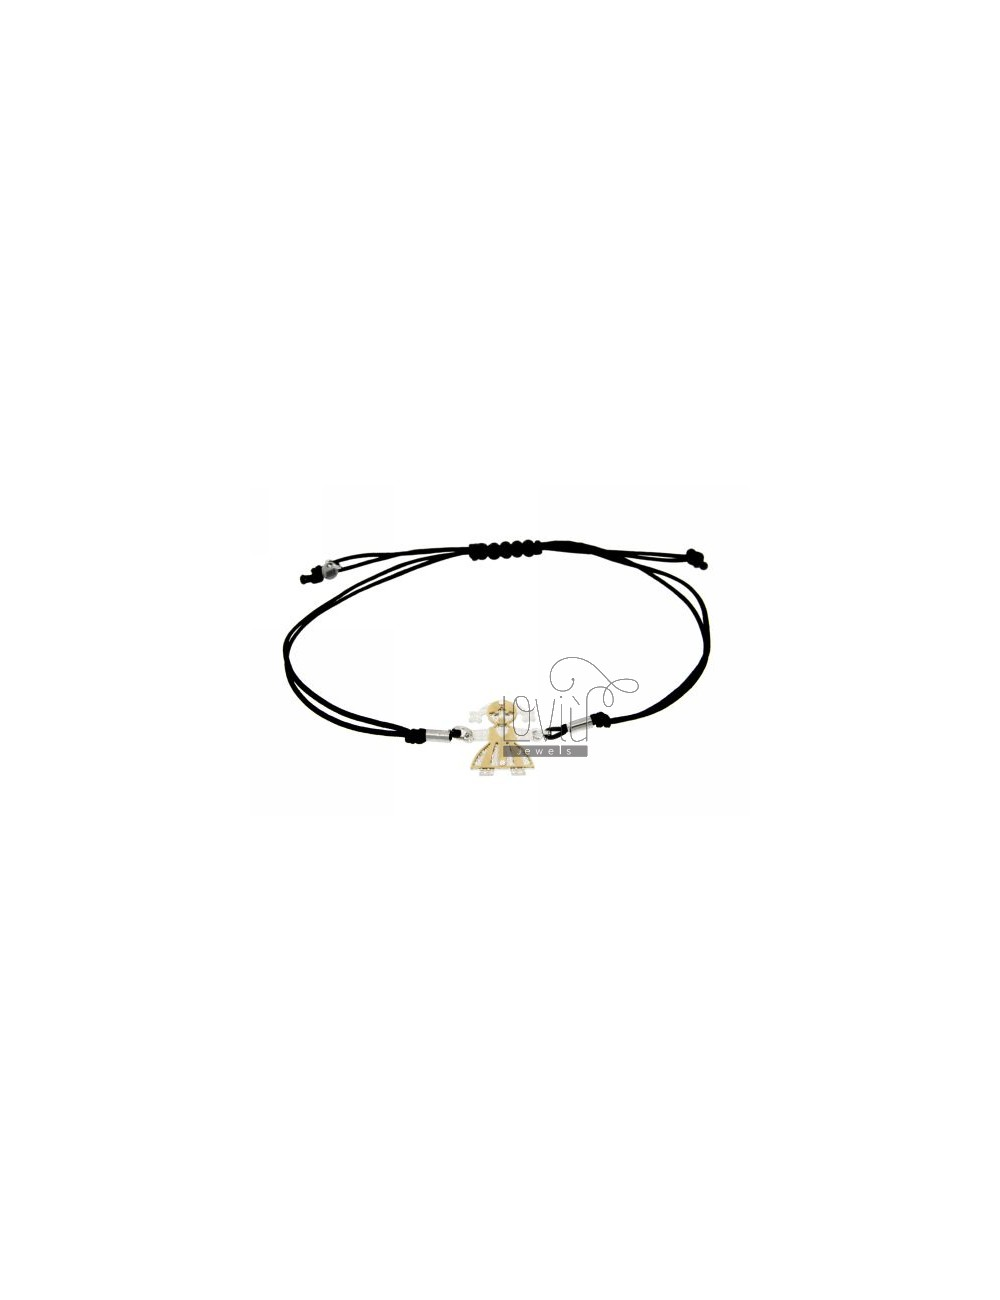 STRING BRACELET WITH CHARM AND A FORM OF GIRL WITH GOLD PLATED SILVER DIAMOND INTERIOR 925